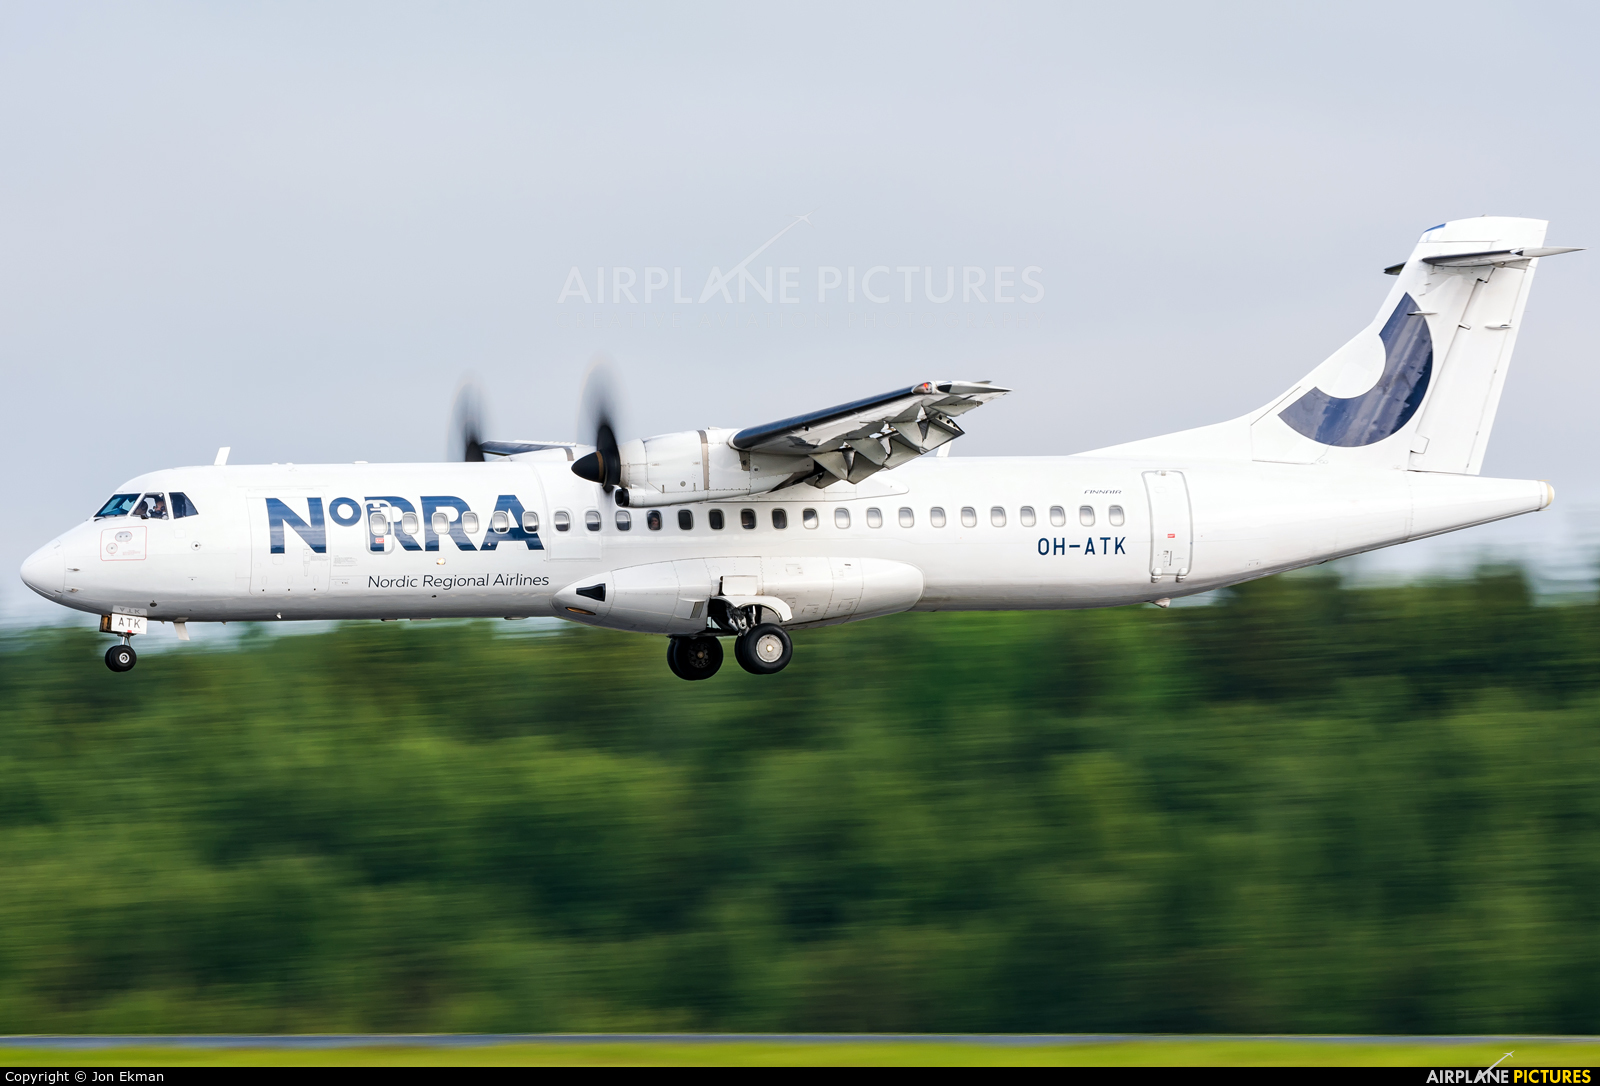 NoRRA - Nordic Regional Airlines OH-ATK aircraft at Helsinki - Vantaa